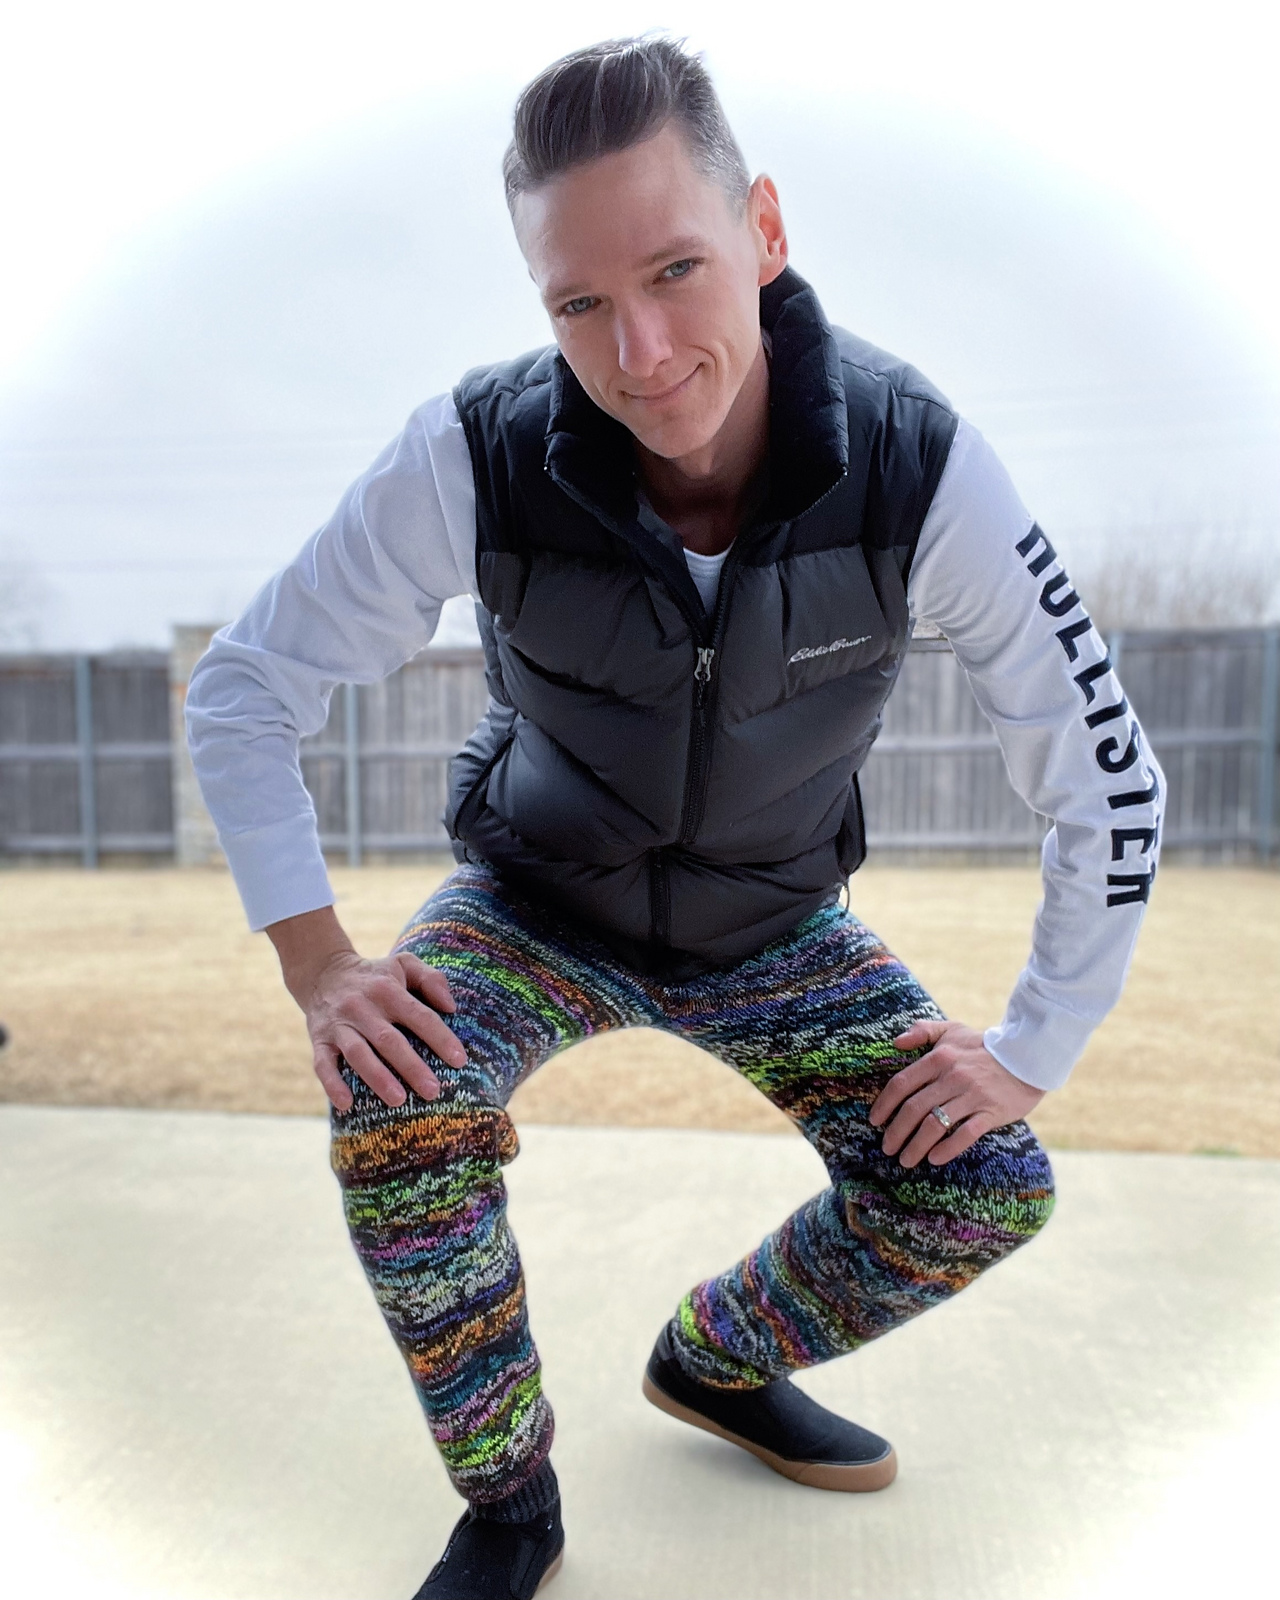 This Knit PJ Pants Pattern From Ross Taylor Will Make You Rethink Everything You Ever Thought About Knitting Pants!